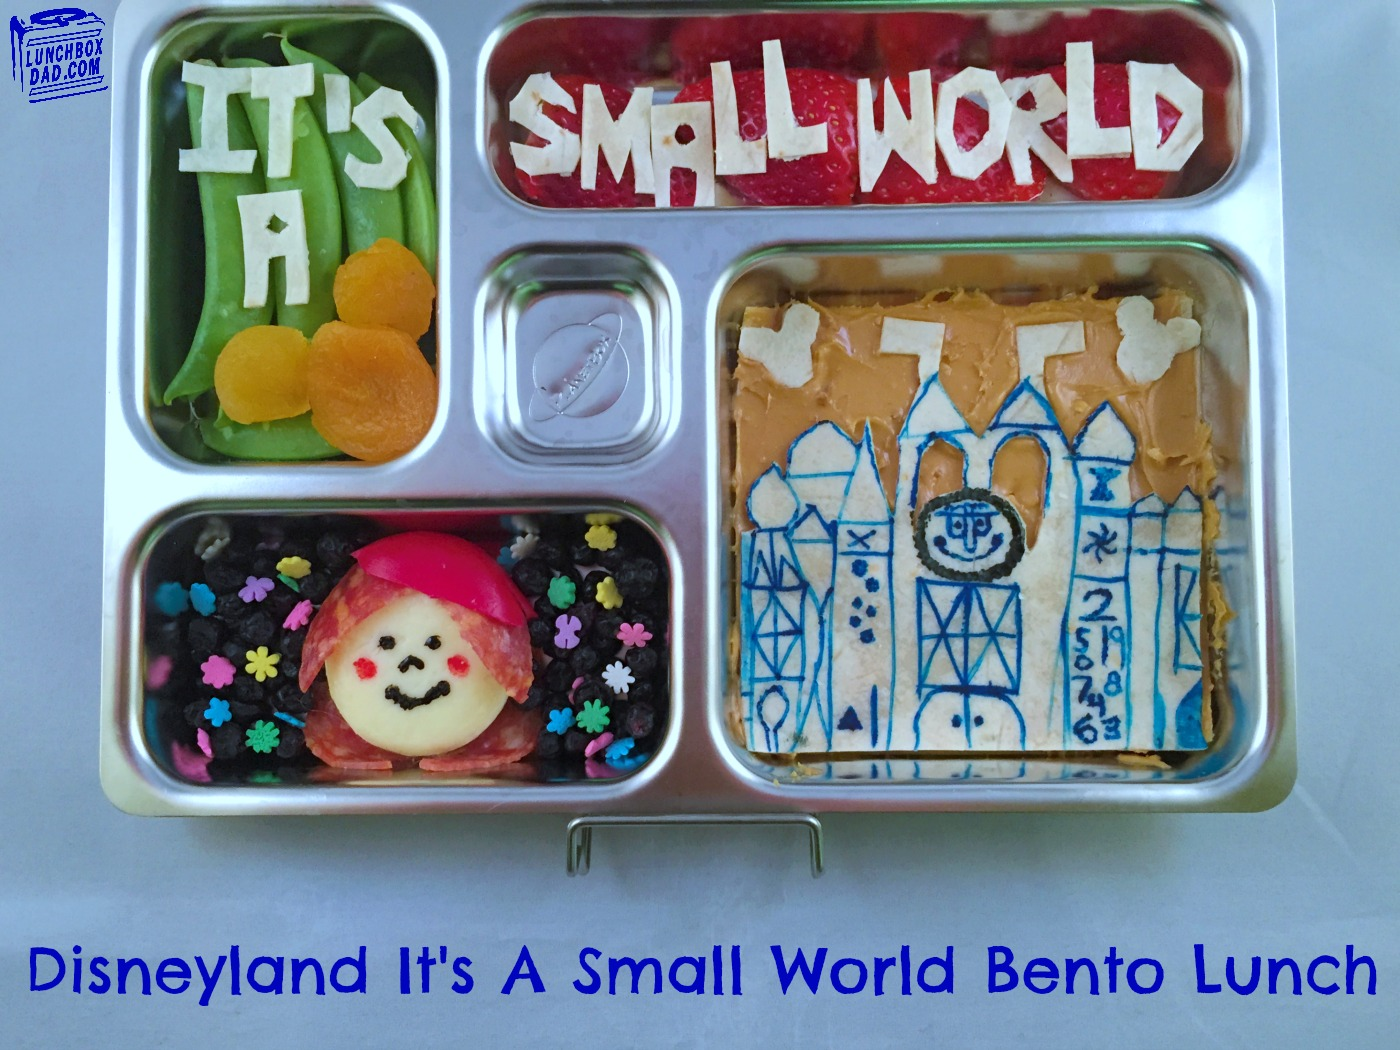 Disneyland It's a Small World Bento Lunch #Disneyside